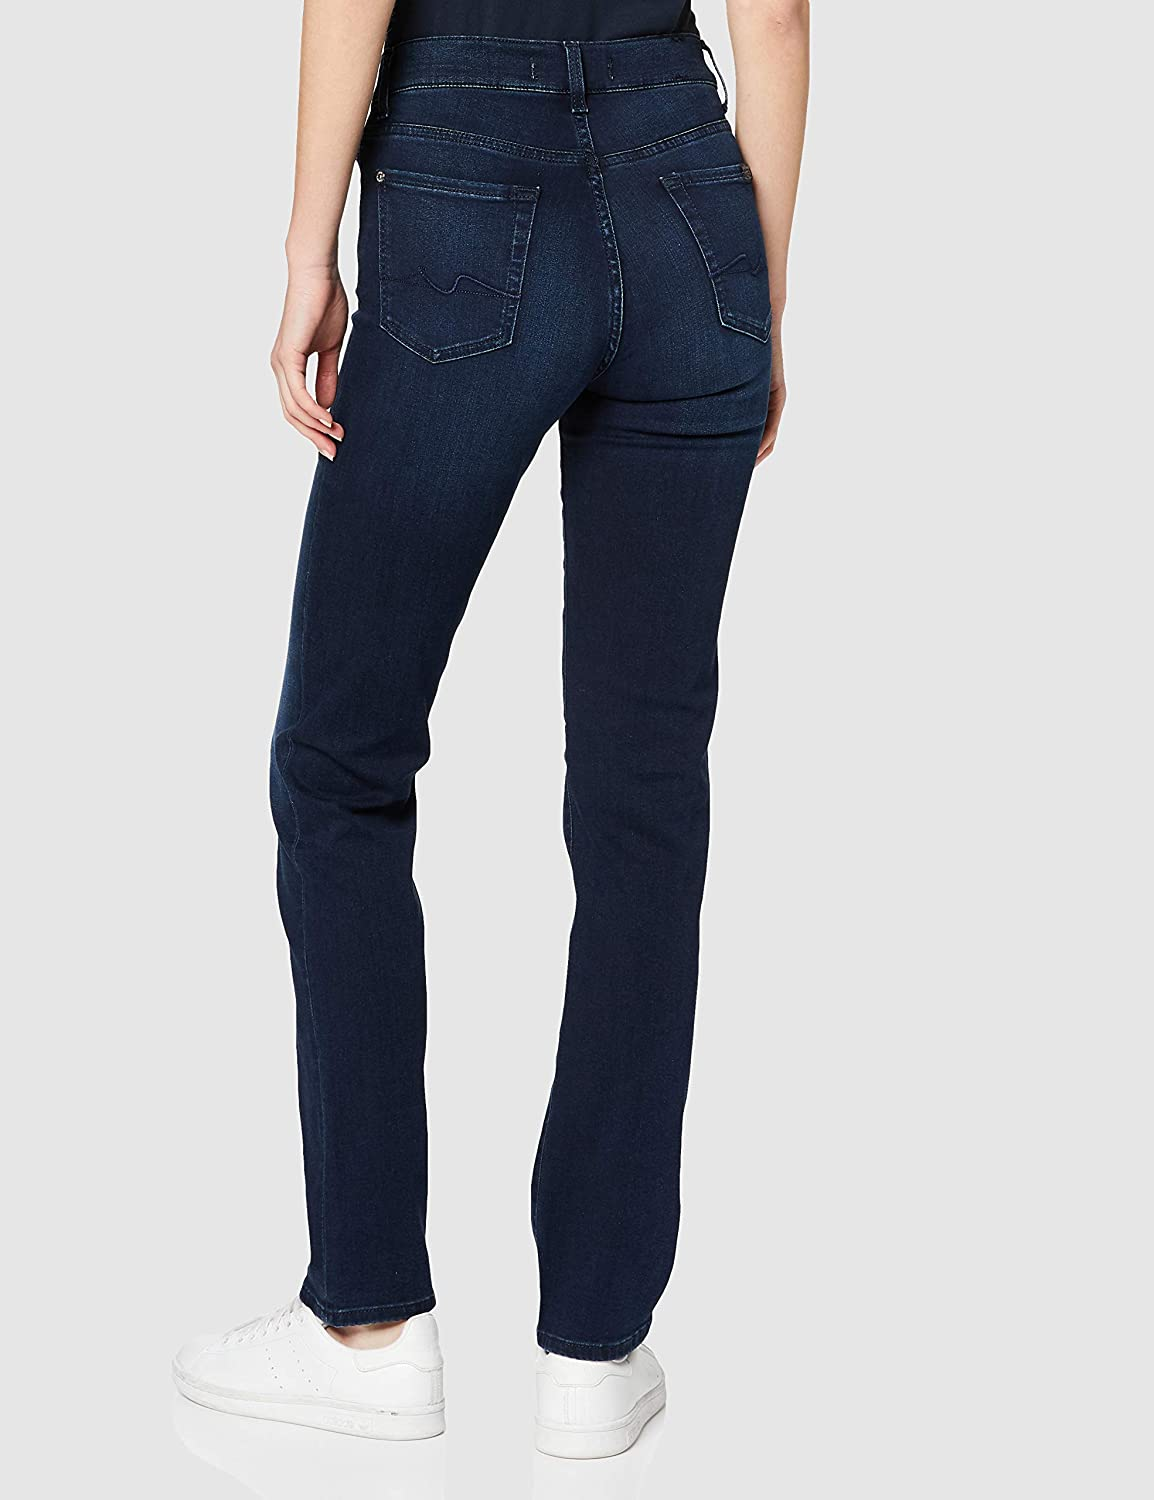 7 For All Mankind Dames The Straight Jeans blauw (Dark Blue Uf).